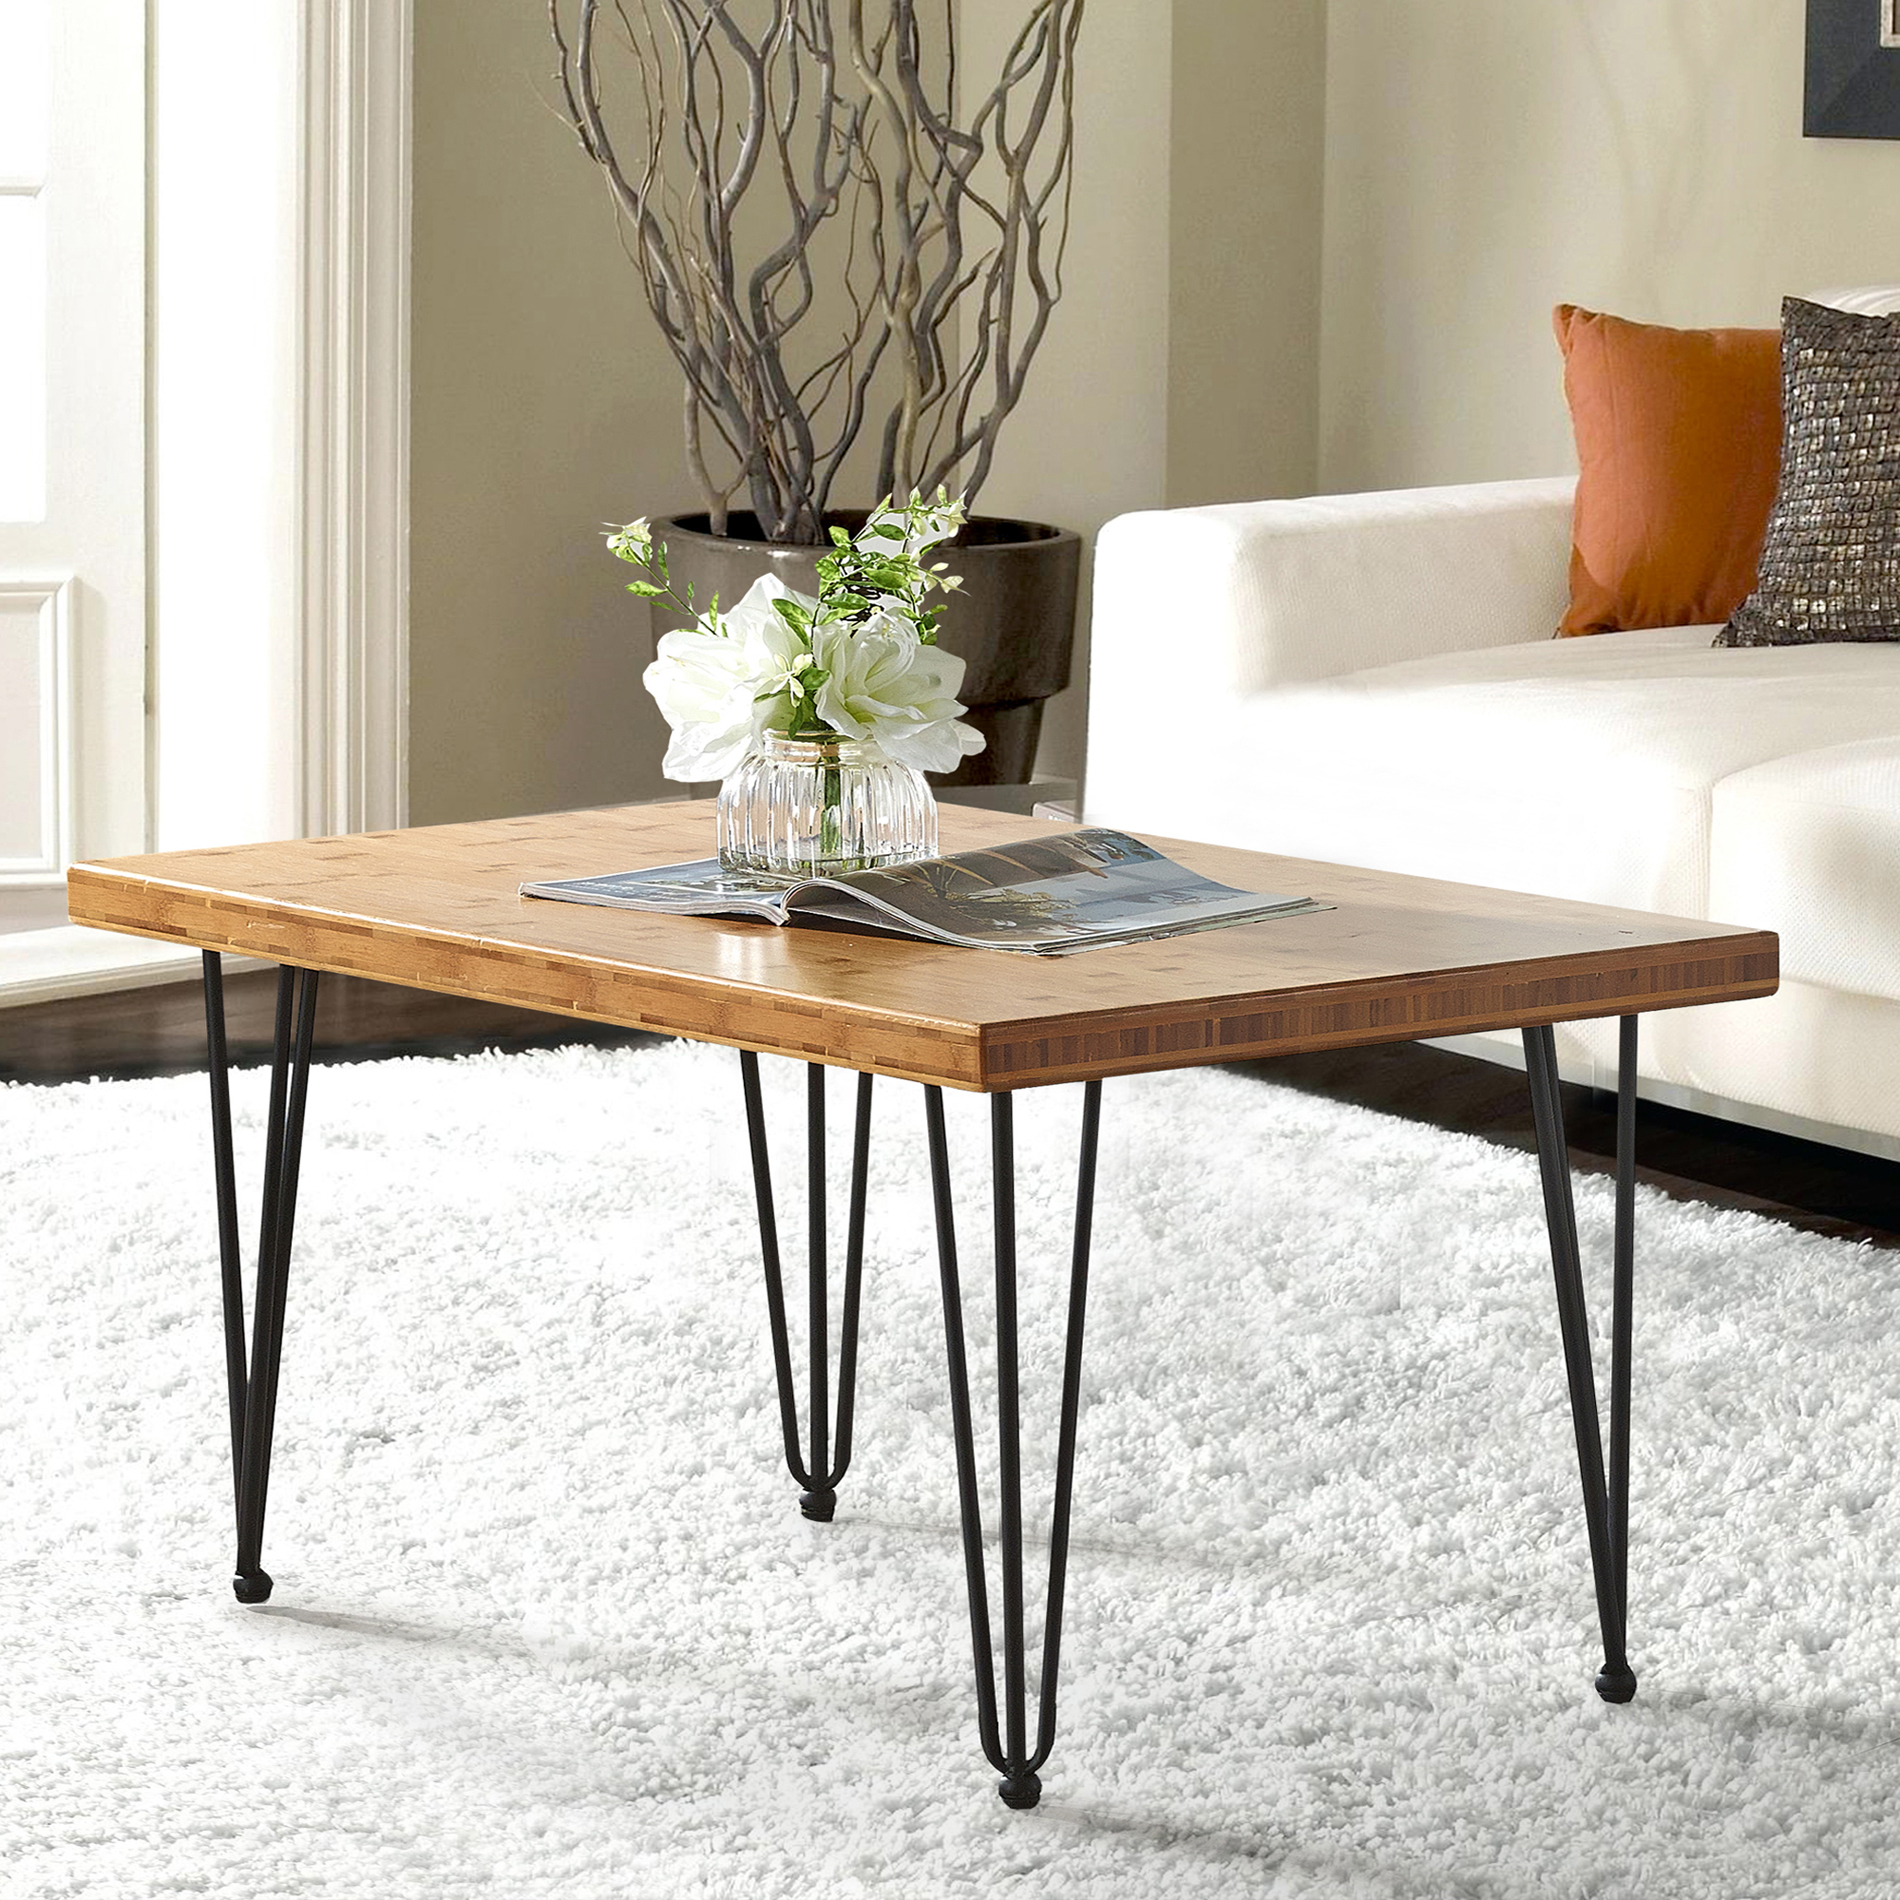 White flowers and open magazine on wood center table with thin metal legs